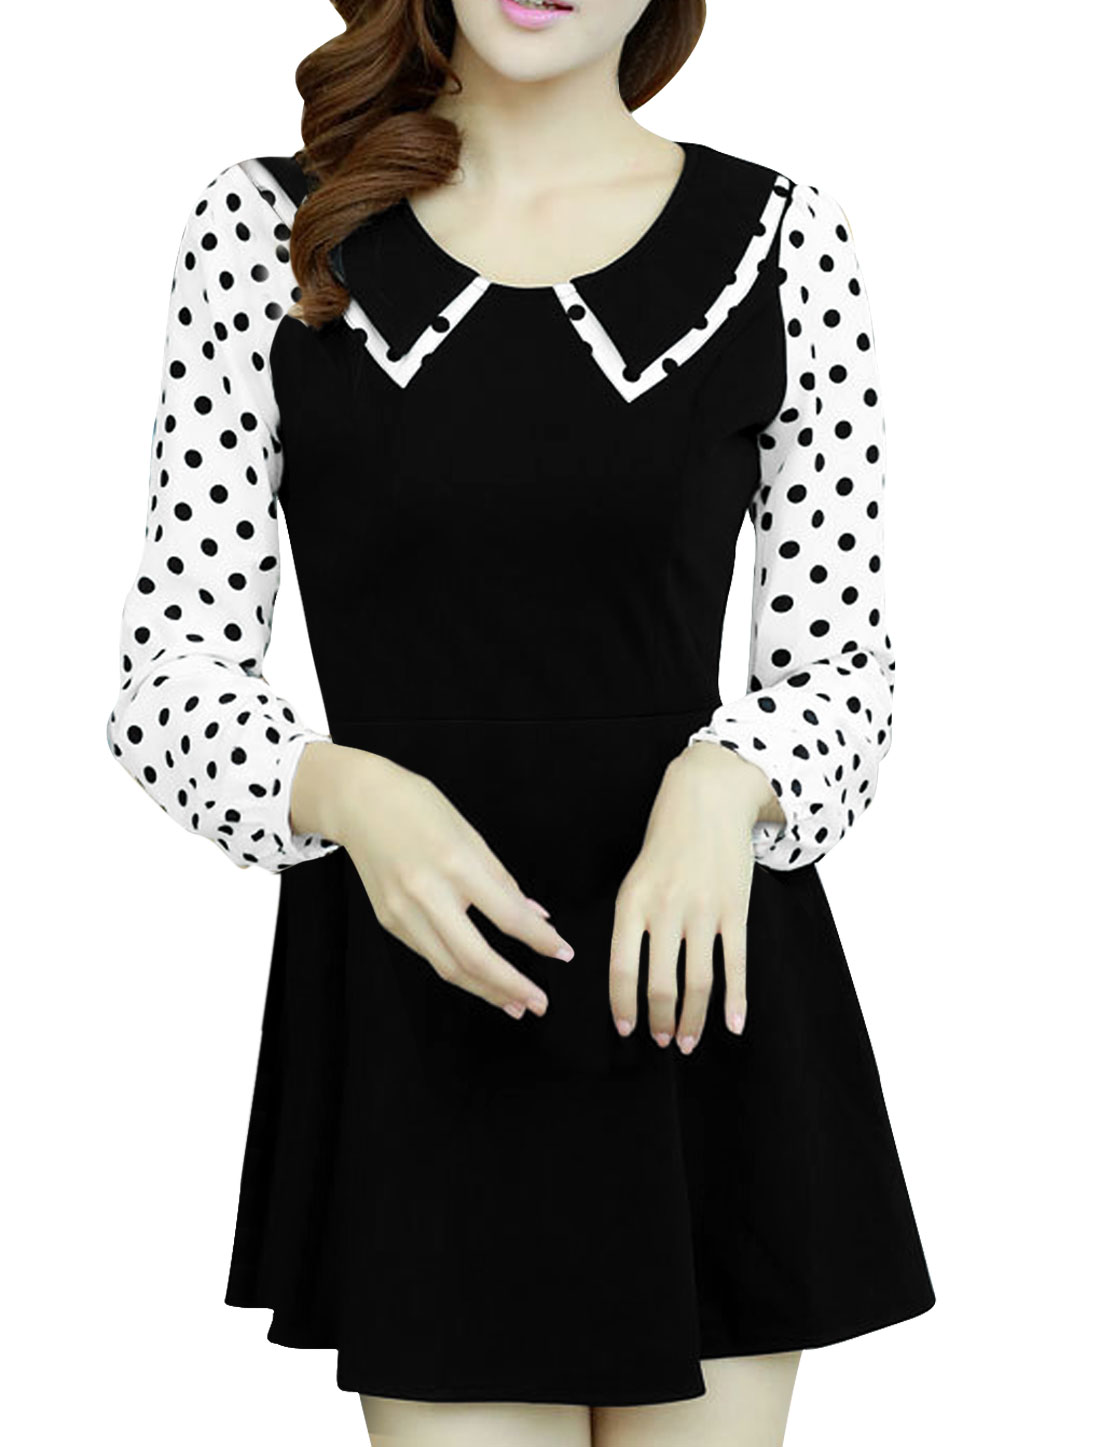 Ladies'Peter Pan Collar Spliced Dots Pattern Sleeve A Line Black Dress S